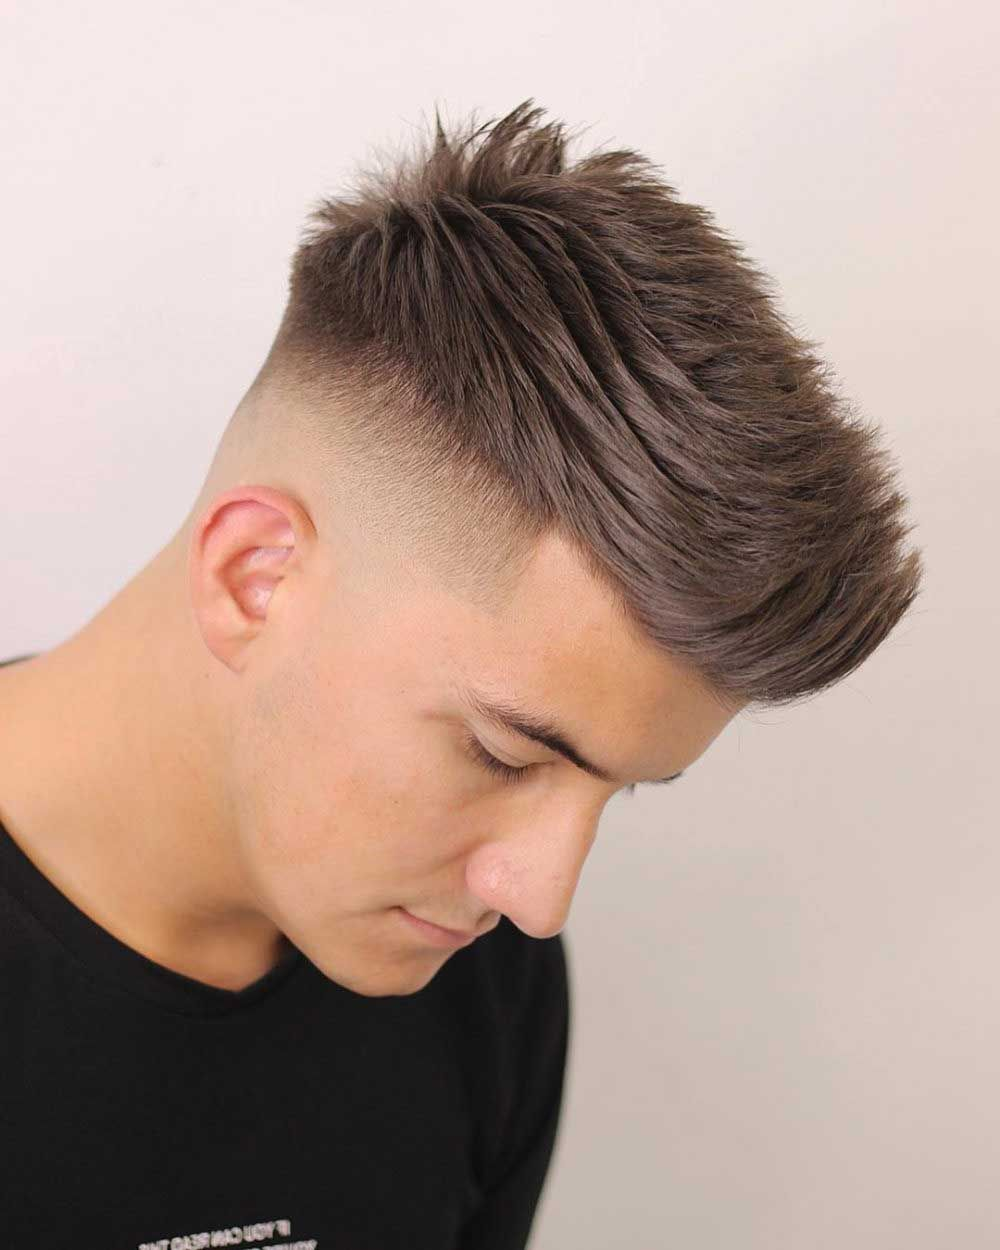 24 Neue Undercut Frisuren Fur Manner Frisuren Manner Frisuren